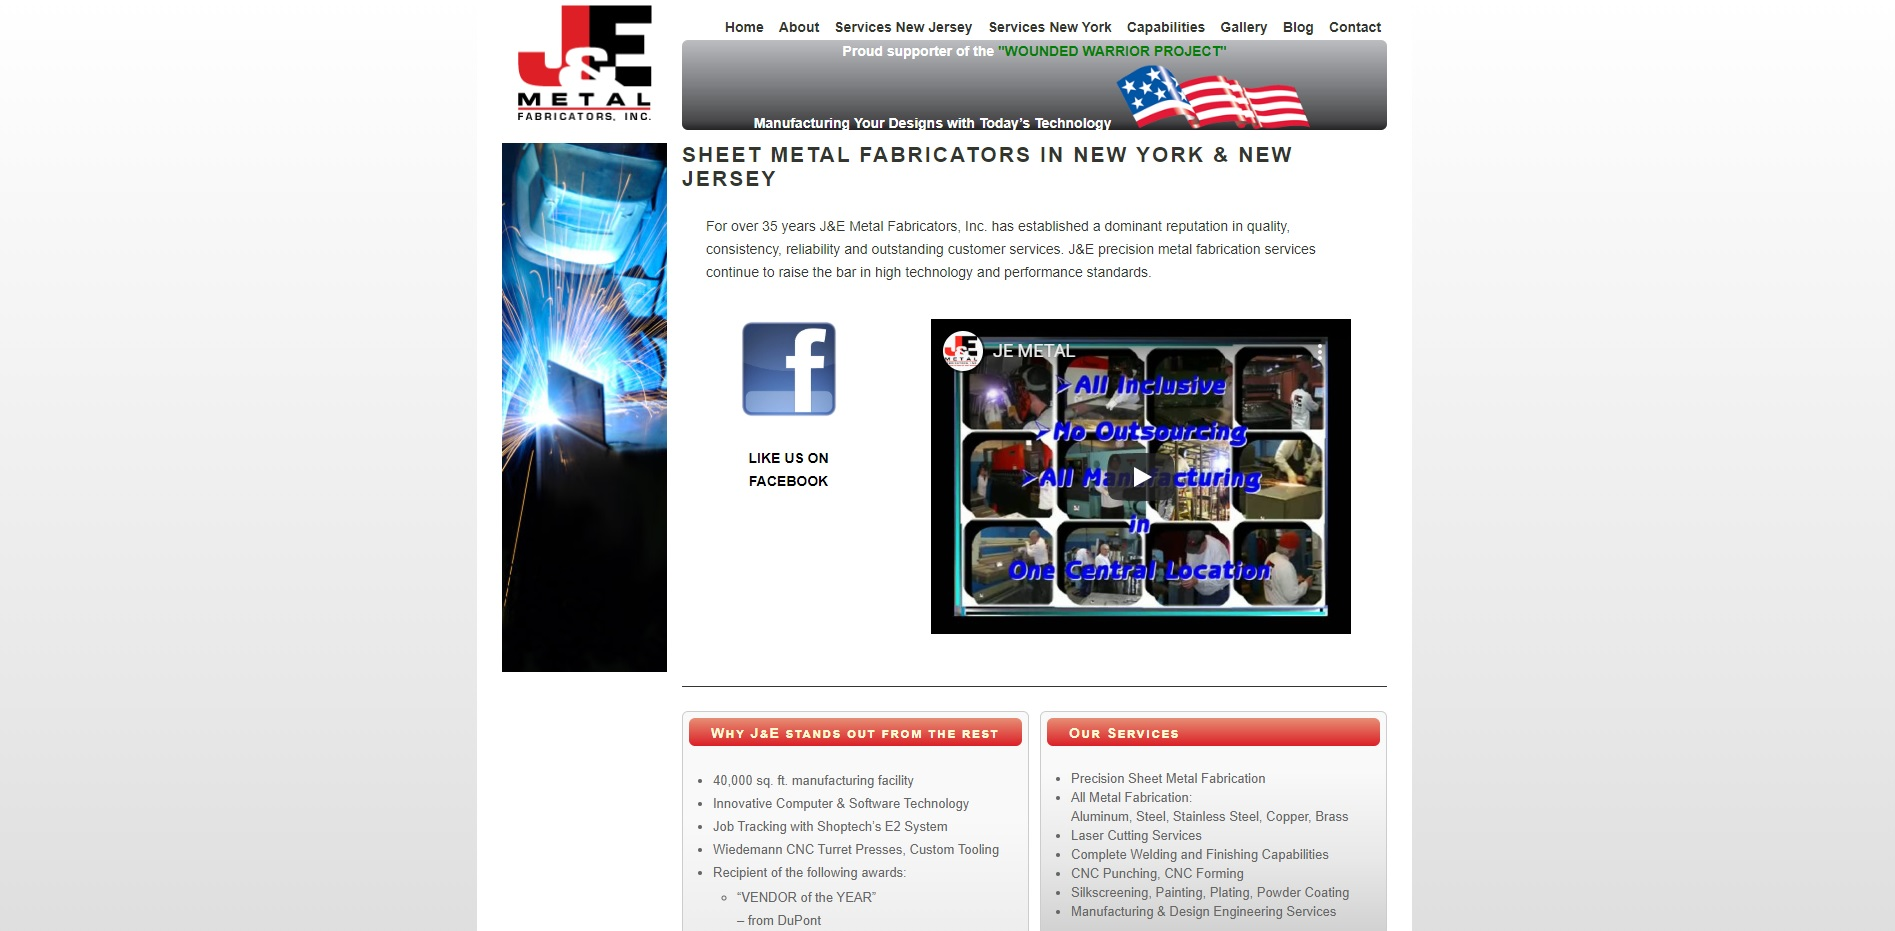 J & E Metal Fabricators, Inc.